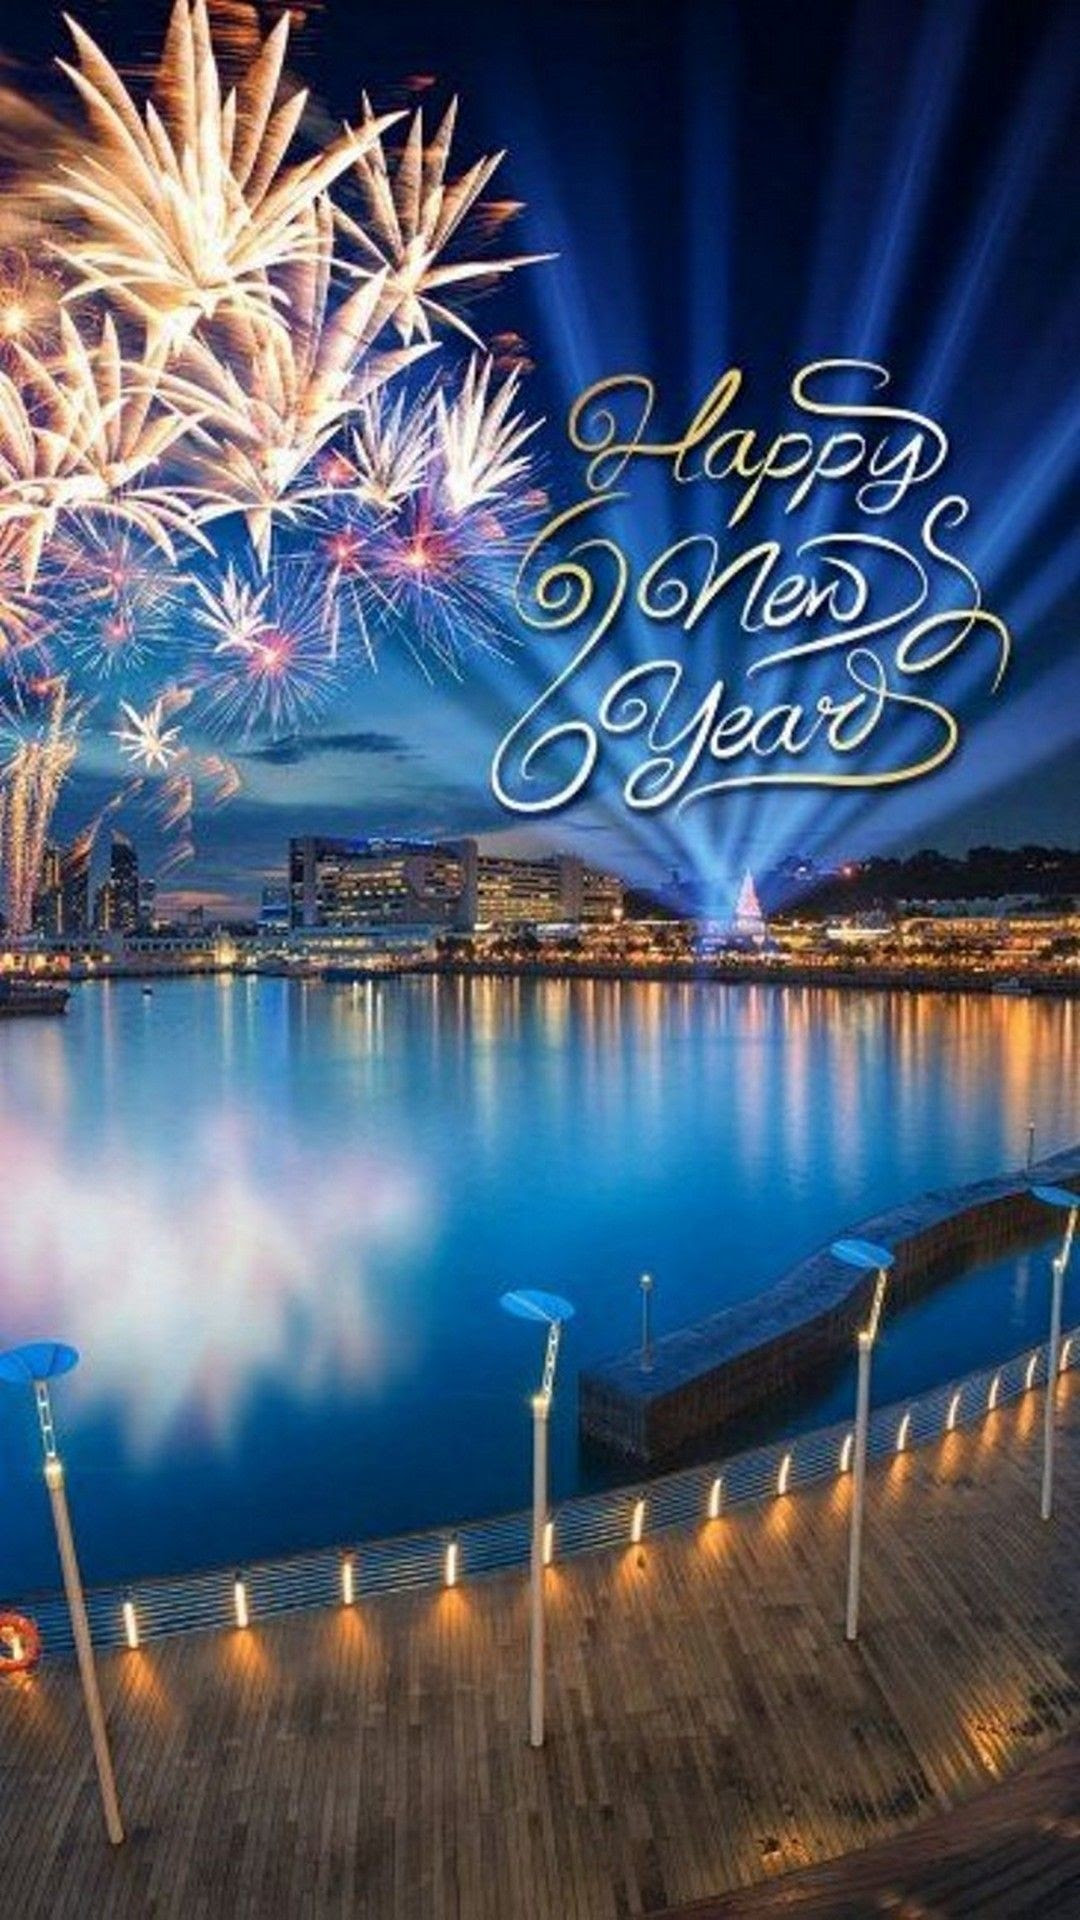 Wallpaper New Year 2018 72 Images